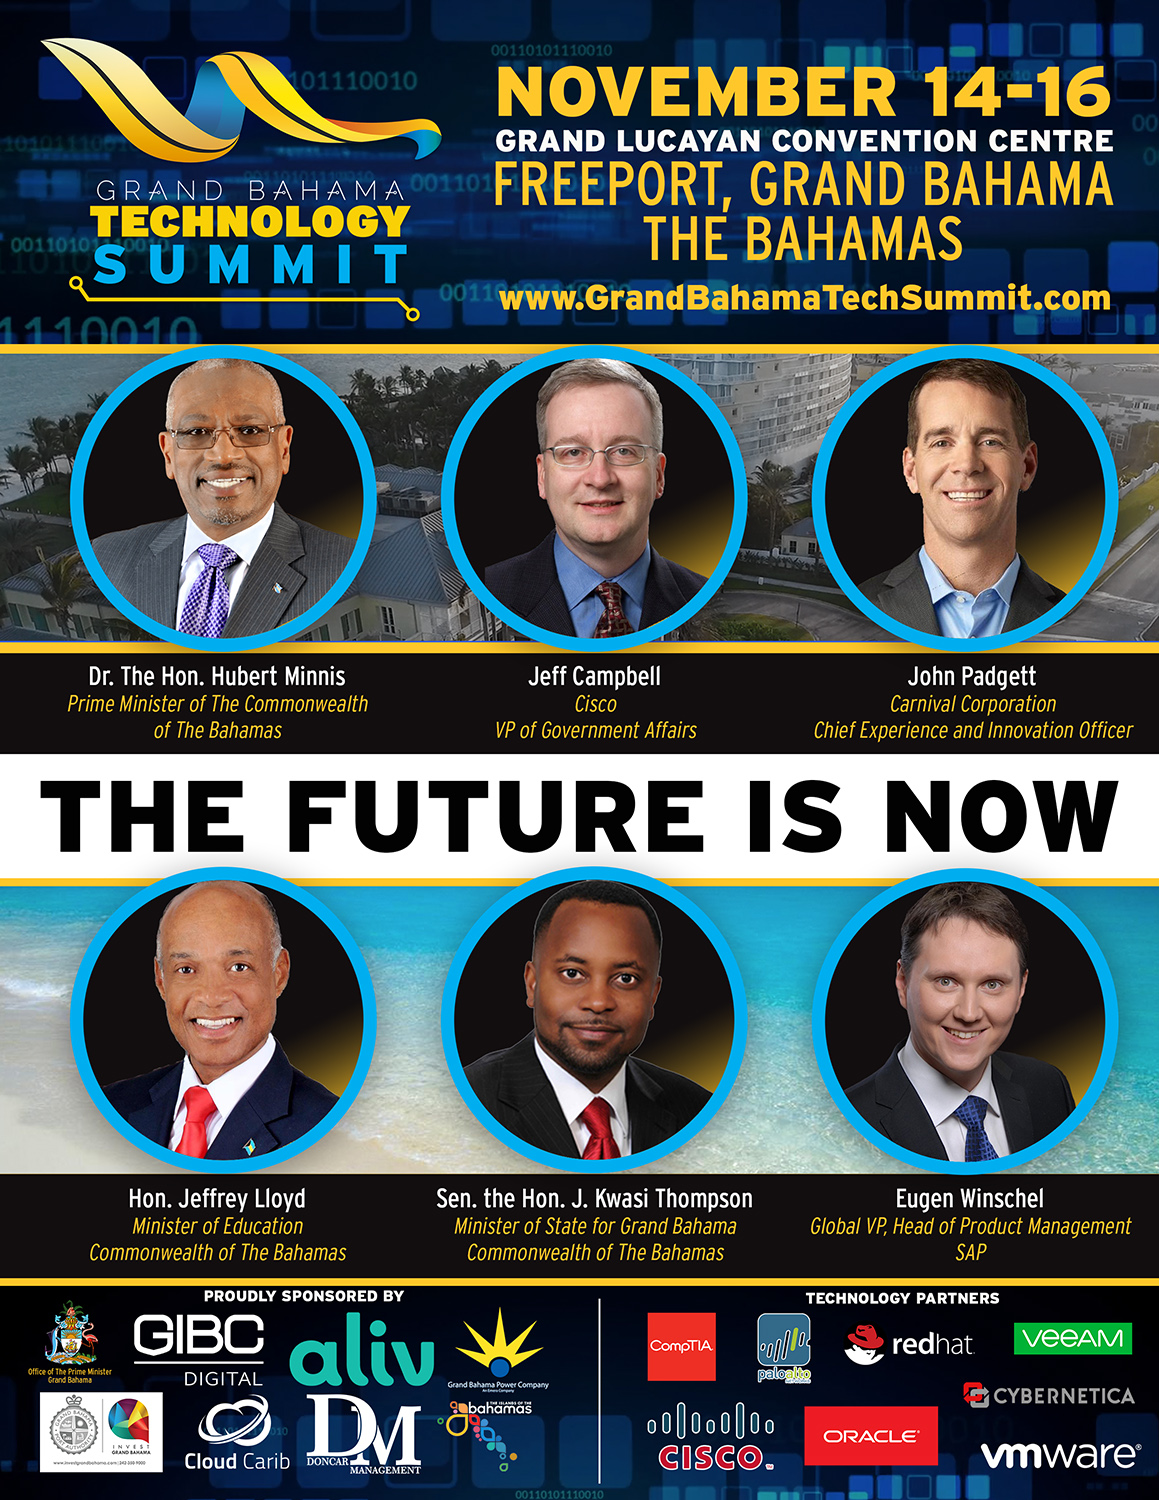 2018 Grand Bahama Technology Summit | The Future is Now